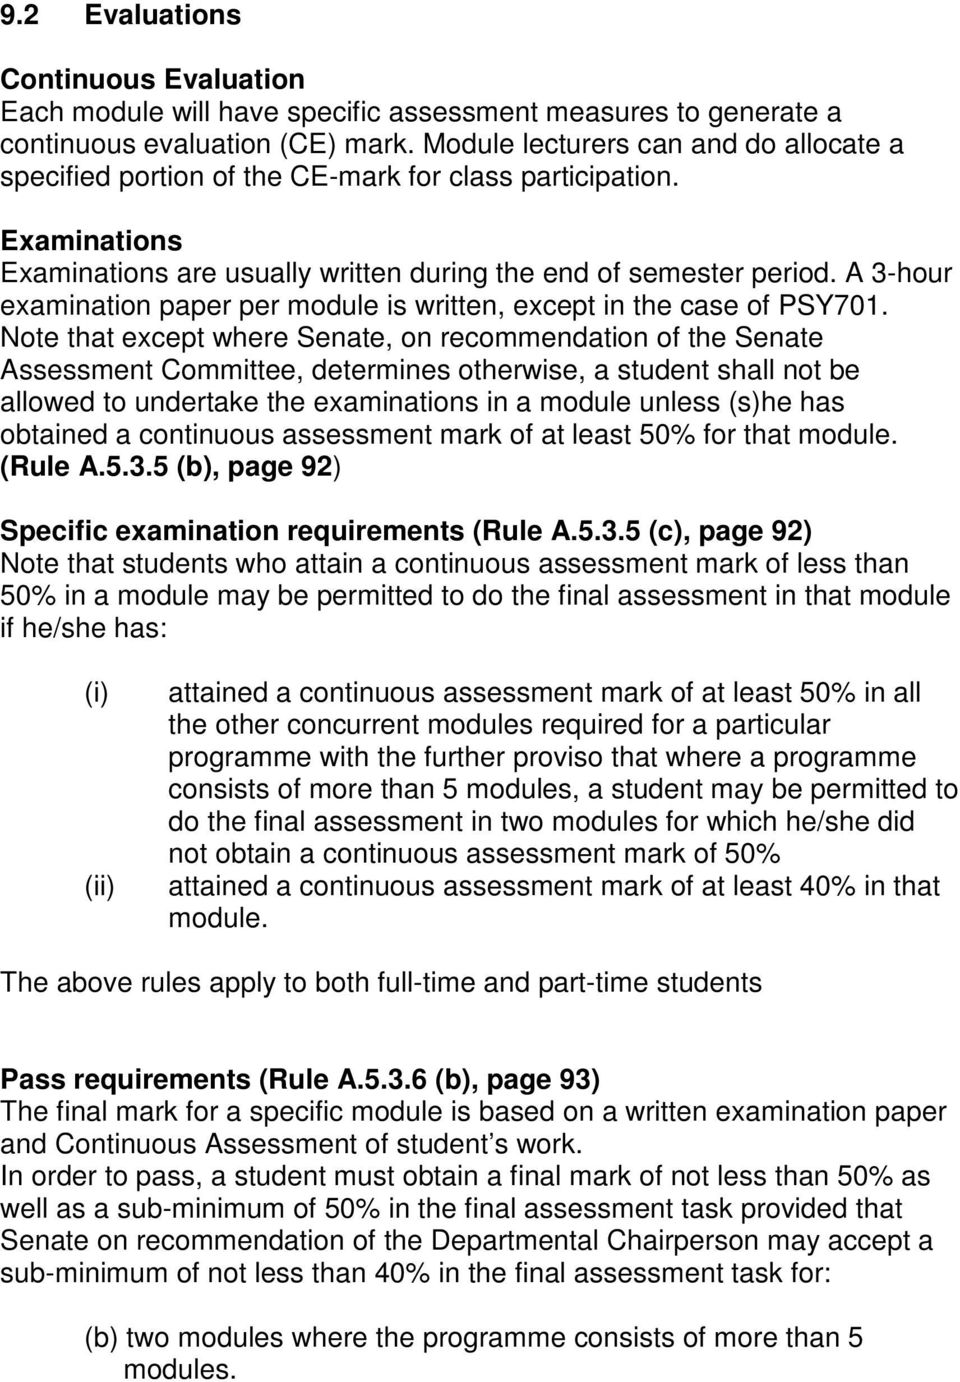 A 3-hour examination paper per module is written, except in the case of PSY701.